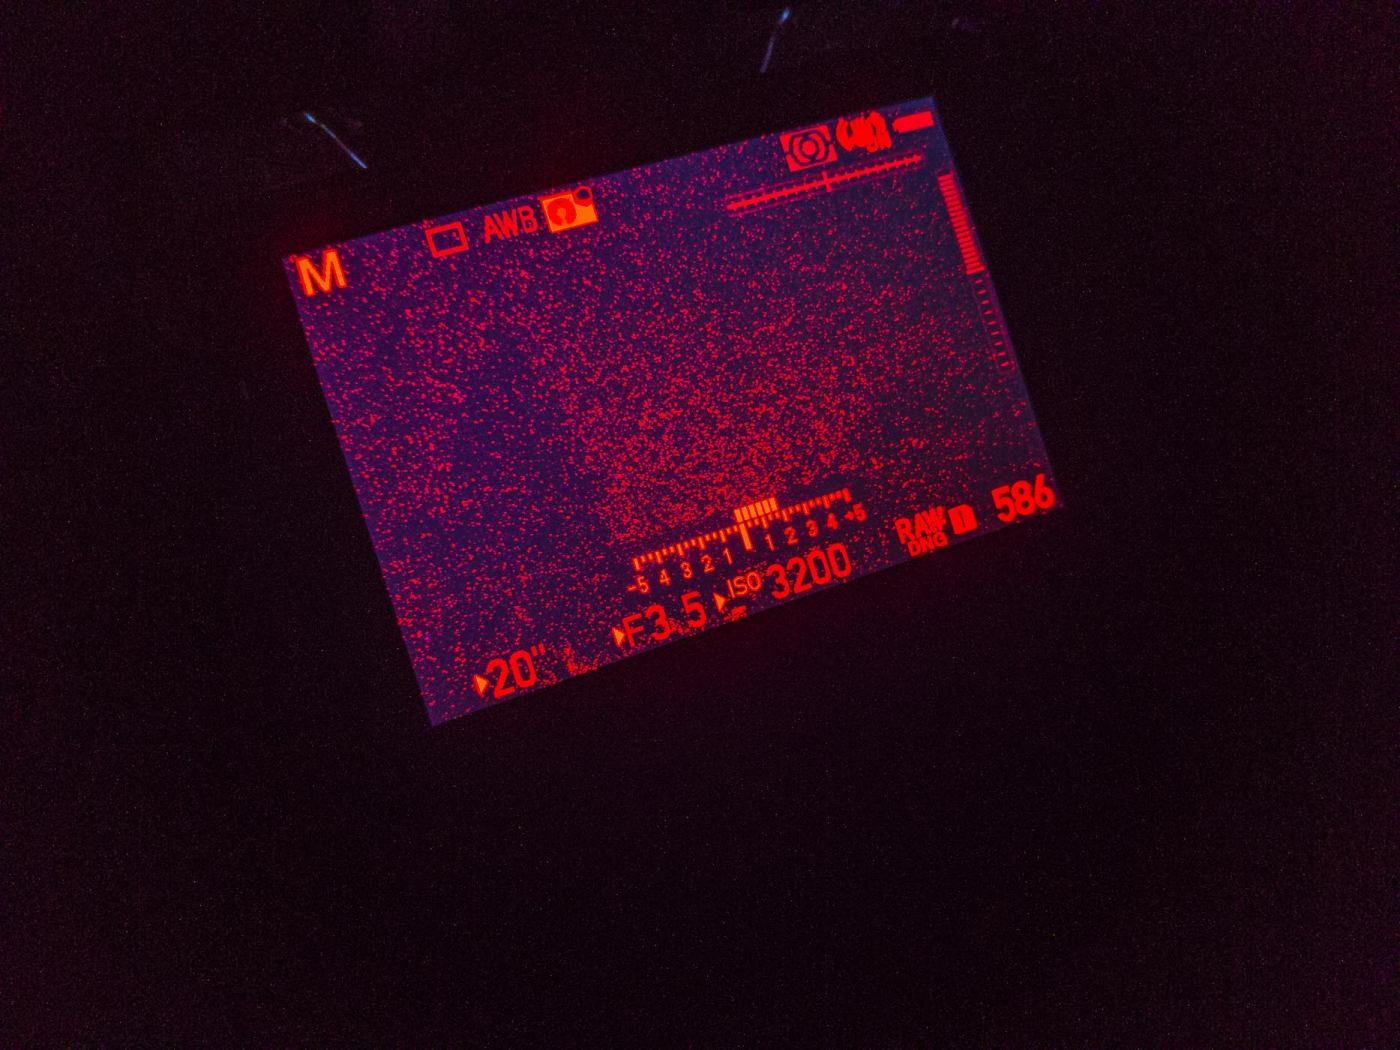 Pentax K-1 Mark II Red Mode Night Vision LCD